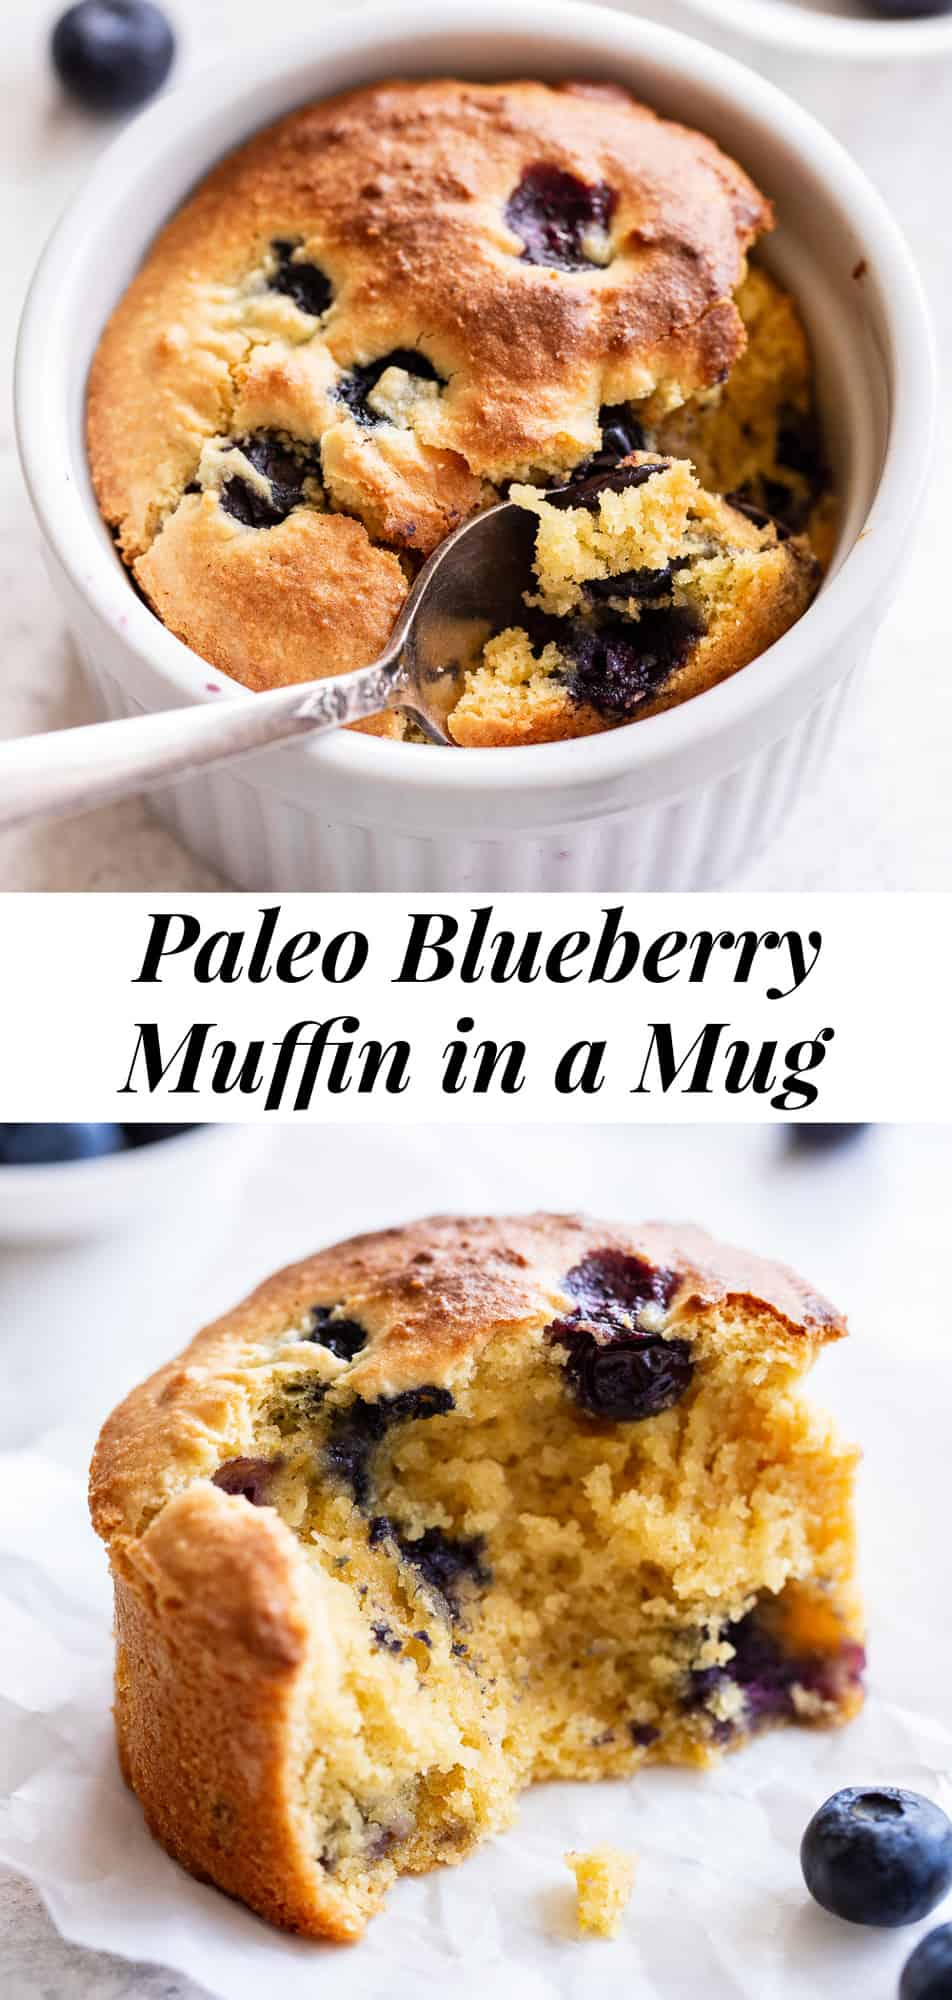 Make a bakery style blueberry muffin in a mug or ramekin that just happens to be grain free and paleo!  This single or double serve muffin is fluffy and tender, loaded with juice blueberries and easy to bake in the toaster oven or oven.  Gluten free, paleo and dairy free. #paleo #paleobaking #glutenfree #cleaneating